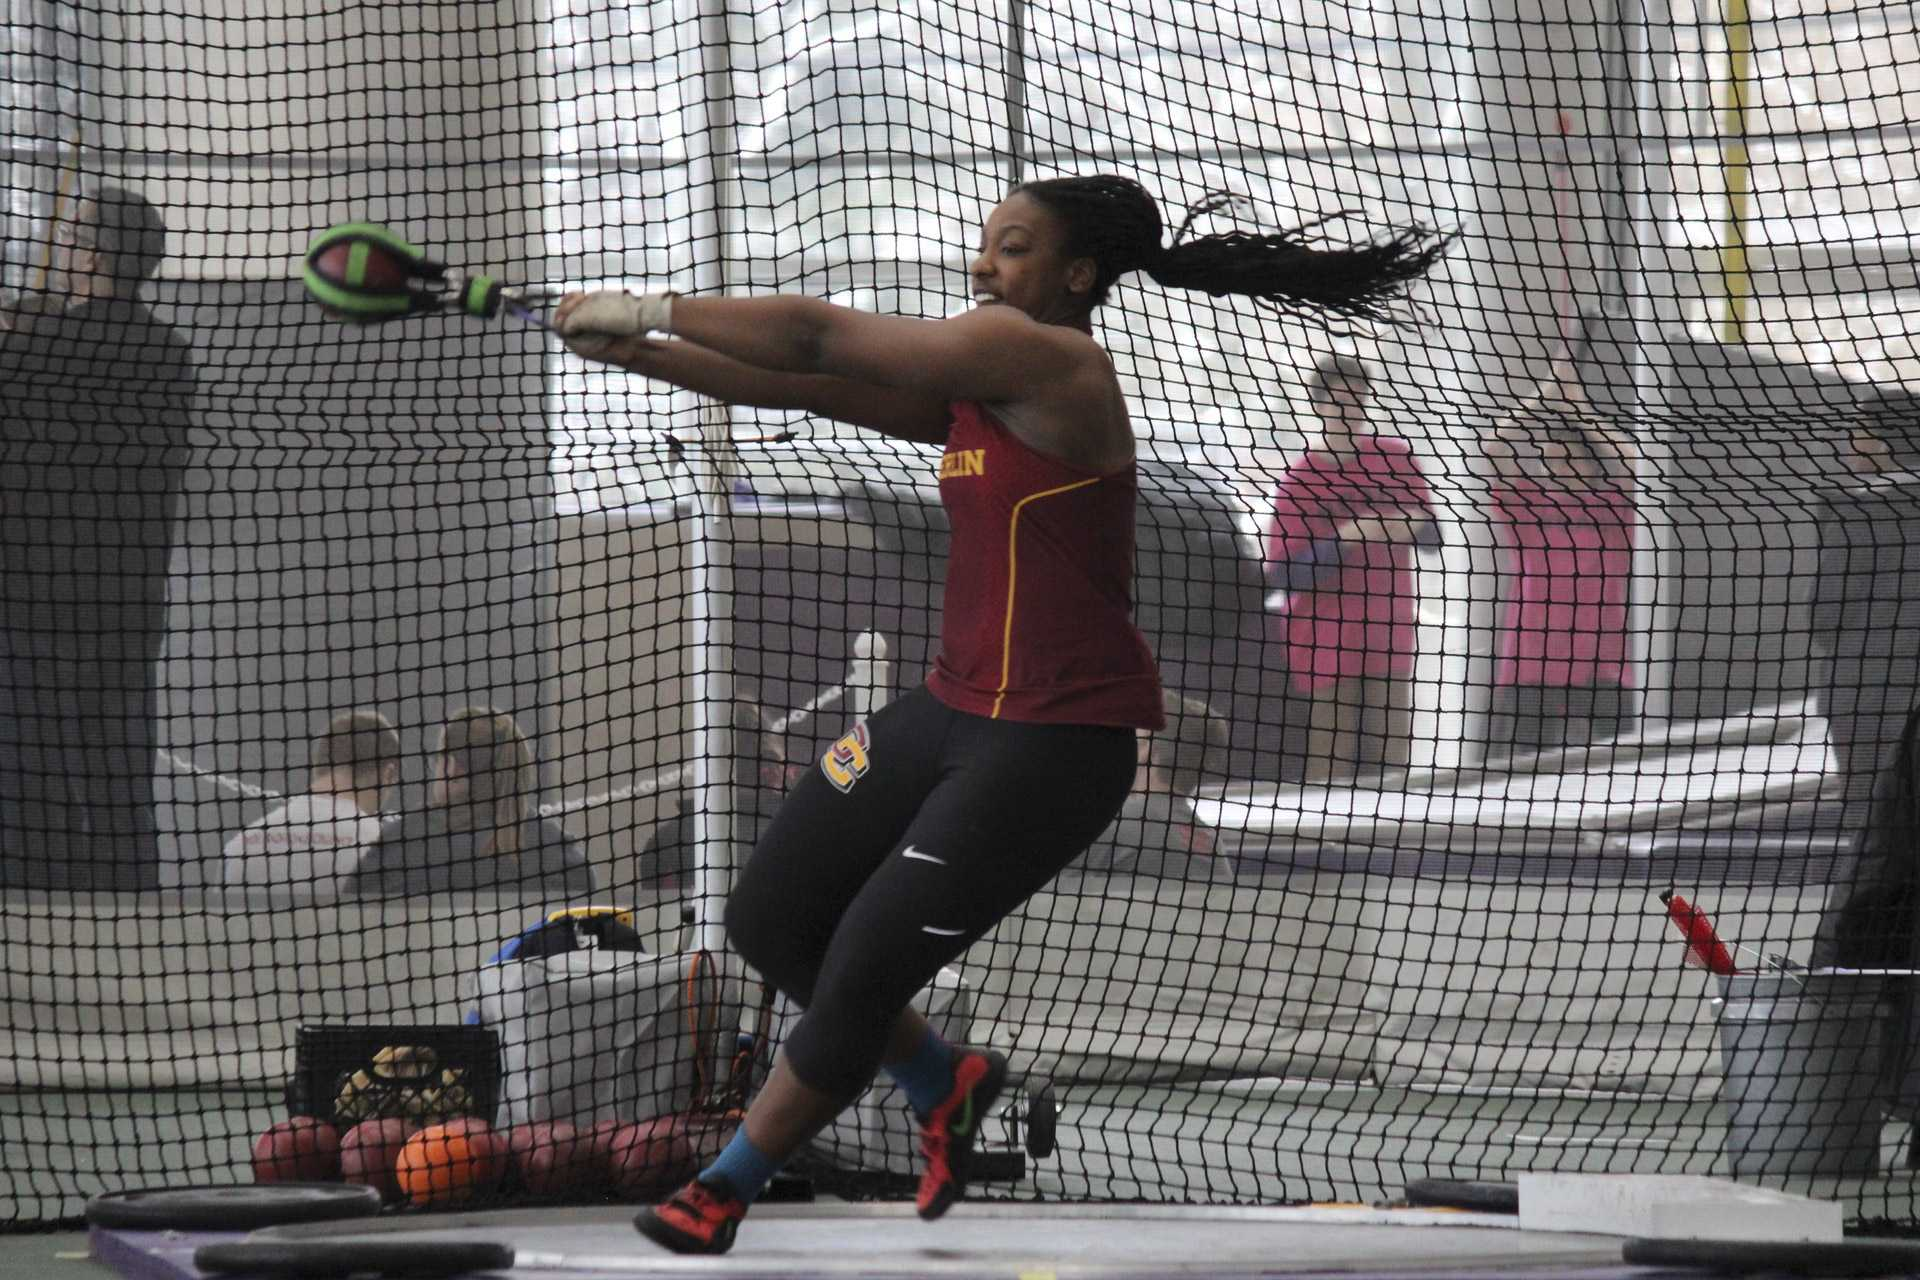 Junior thrower and three-time All-American Monique Newton launches the shot put. A Sacramento, CA native, Newton is also a track and field team captain.